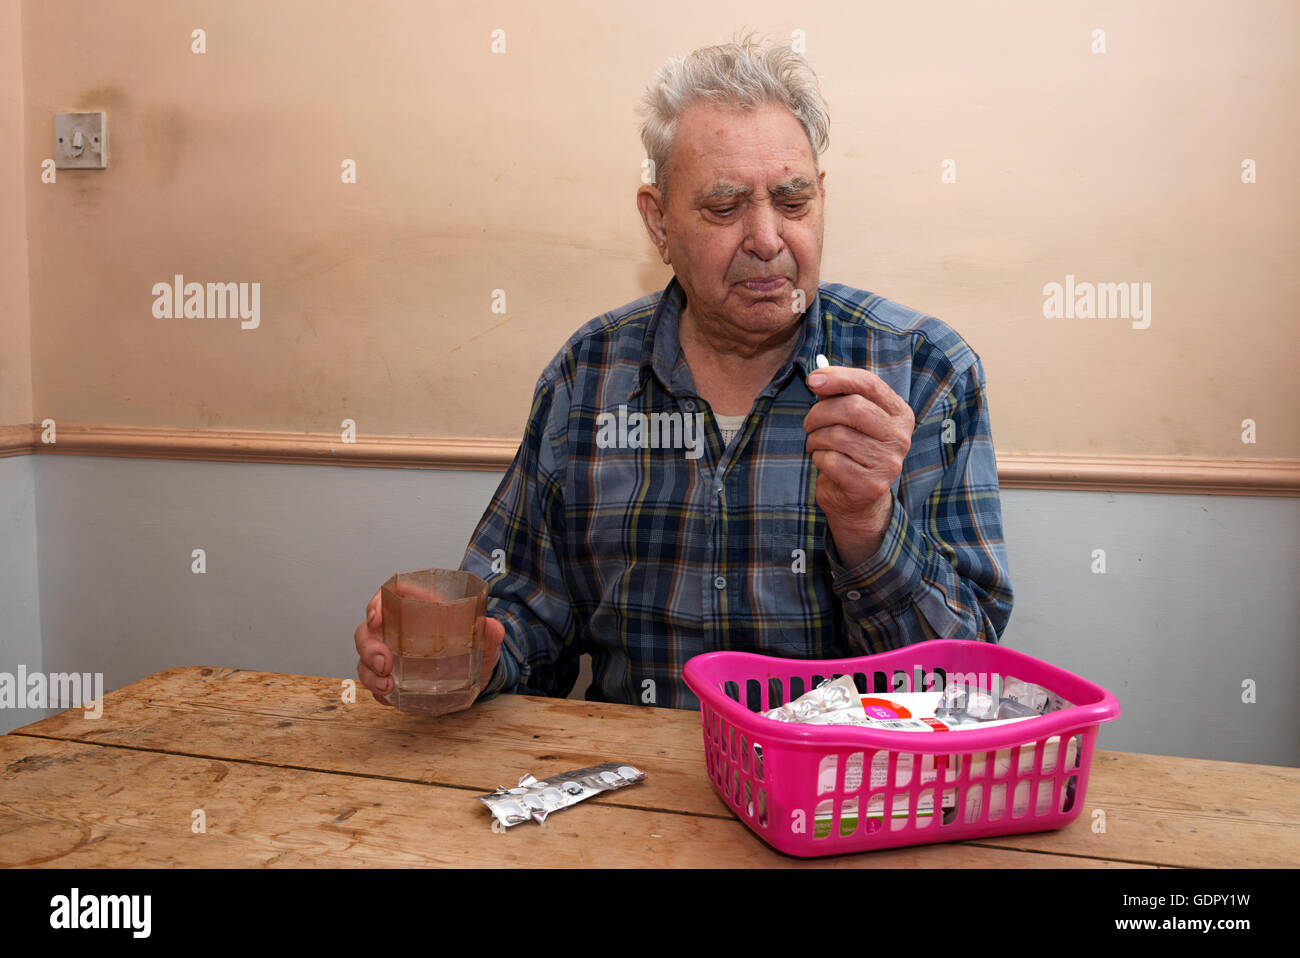 Elderly man with type 2 diabetes taking Metformin - Stock Image